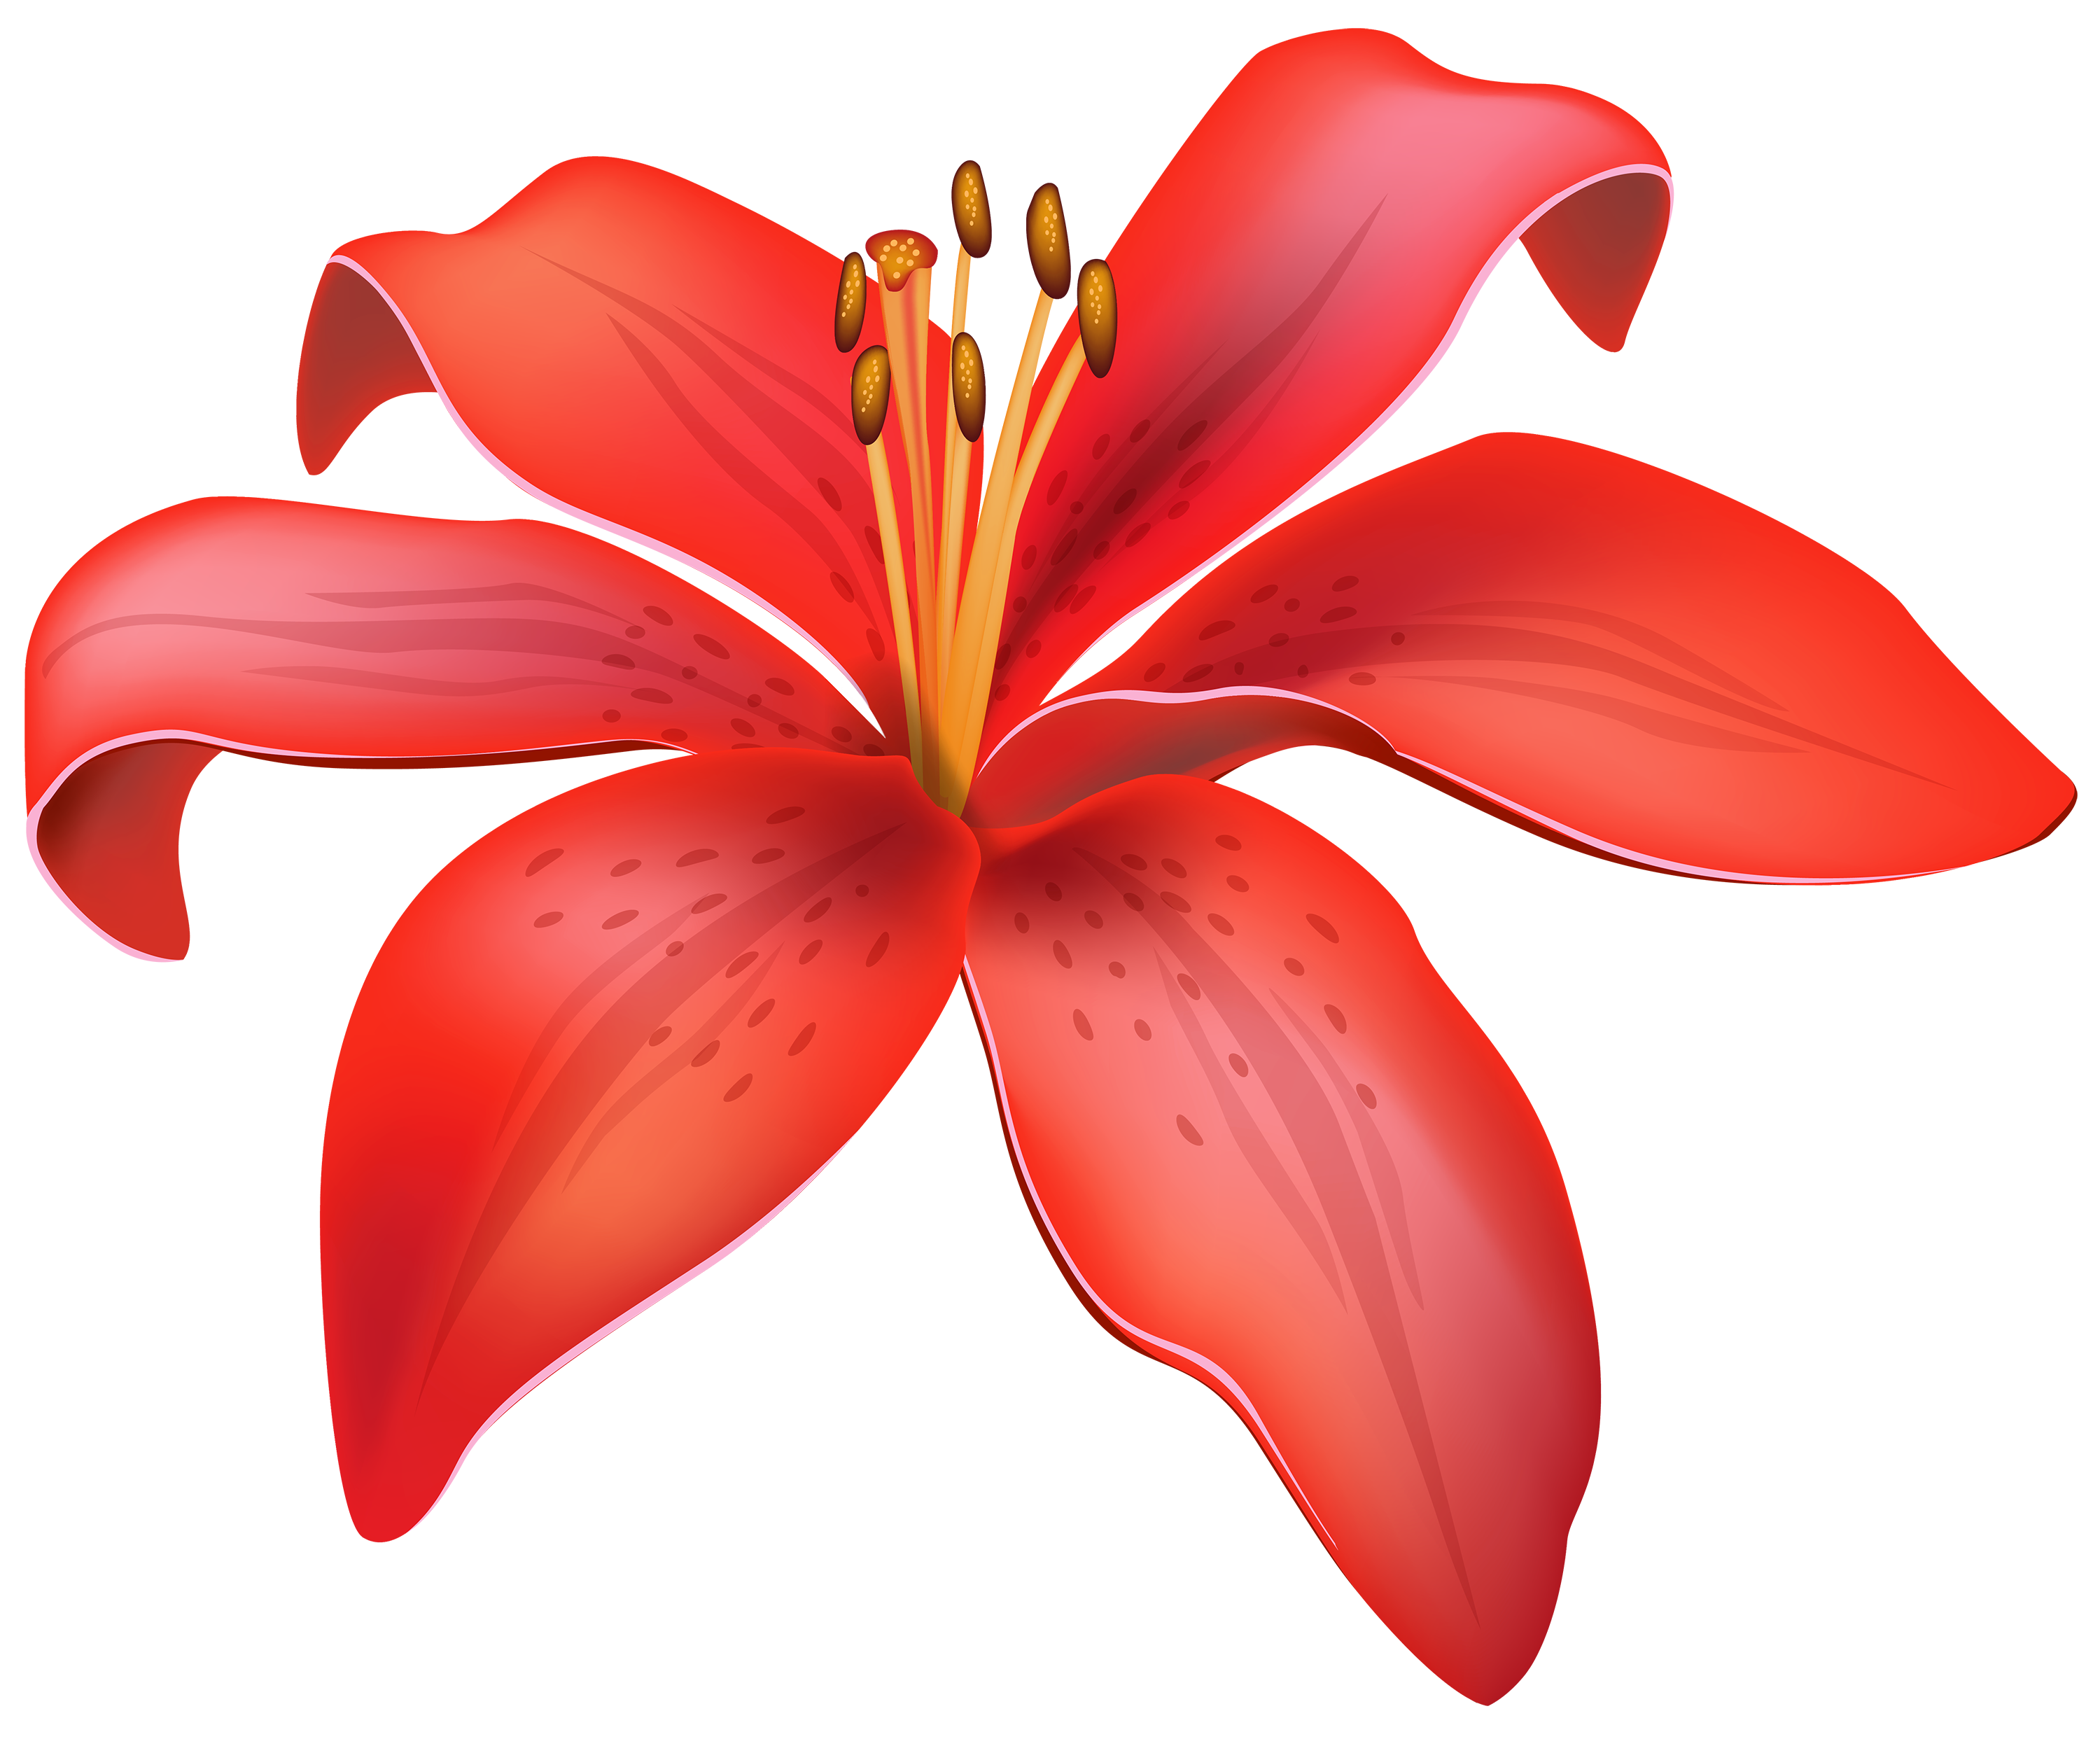 Flowers png clipart. Red lily flower best